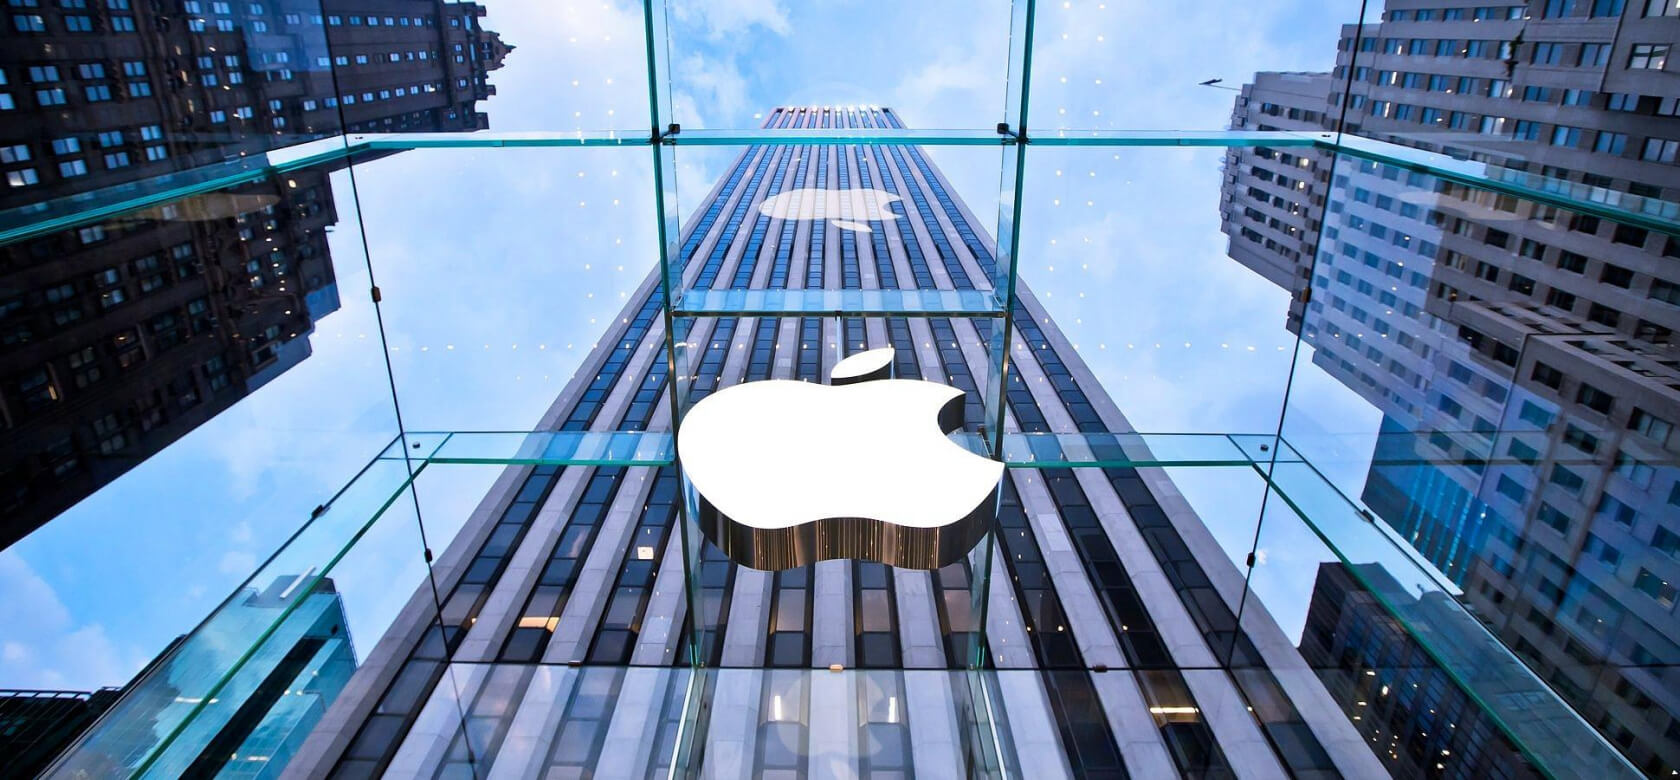 One senator is probing Apple for more information on iPhone throttling issues